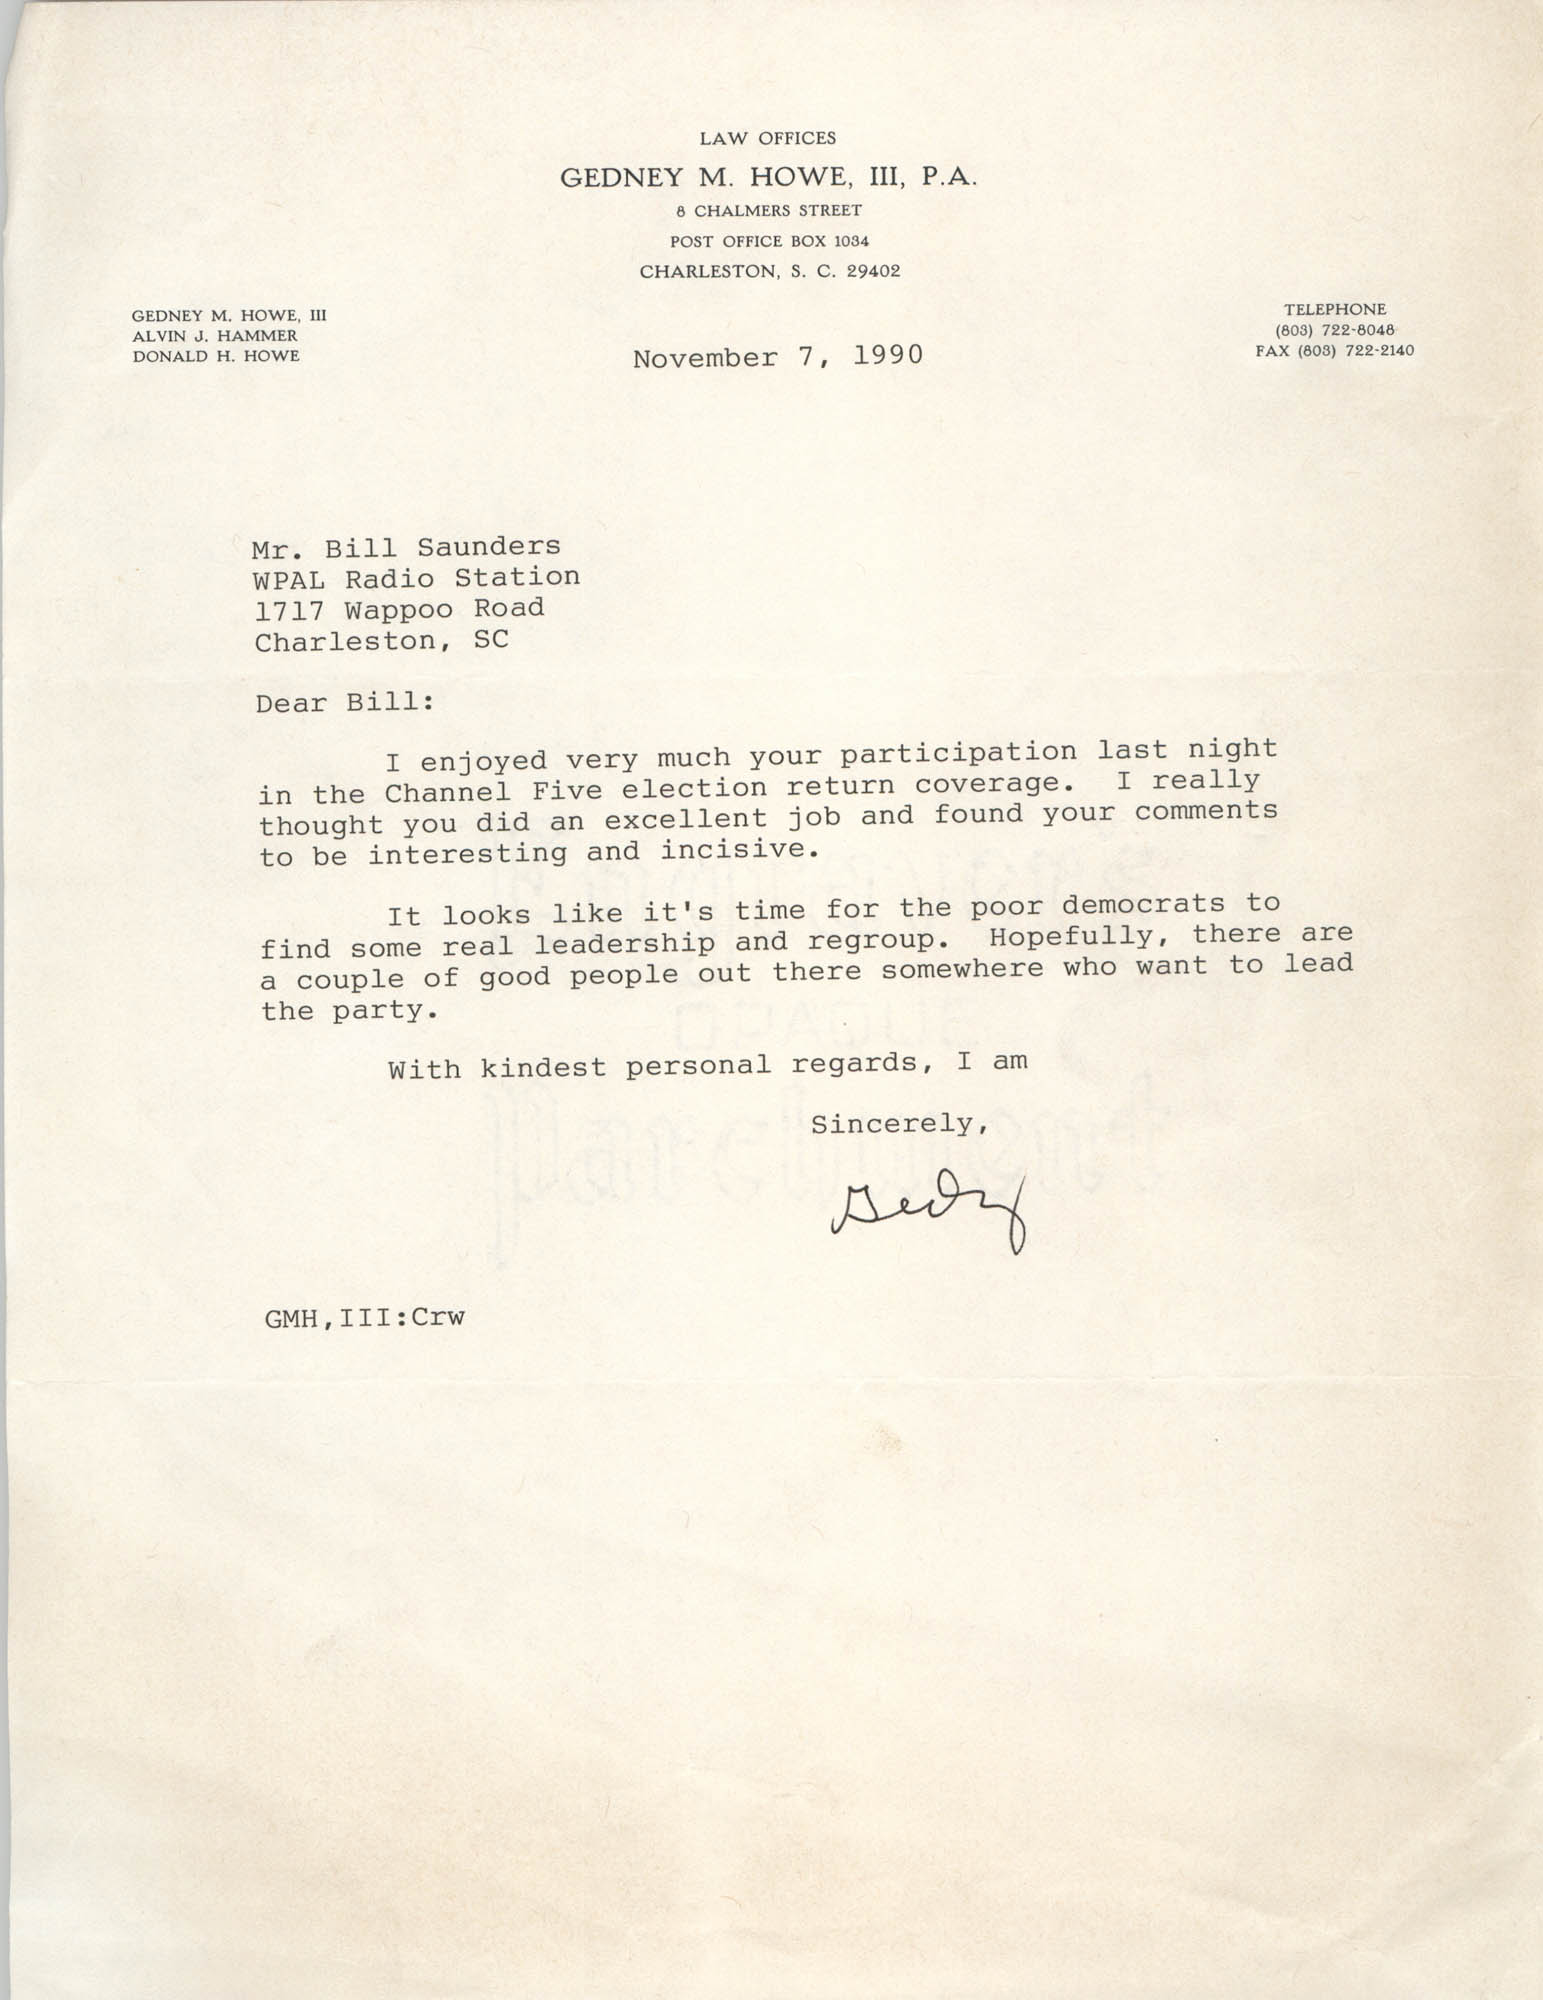 Letter from Gedney M. Howe, III to William Saunders, November 7, 1990